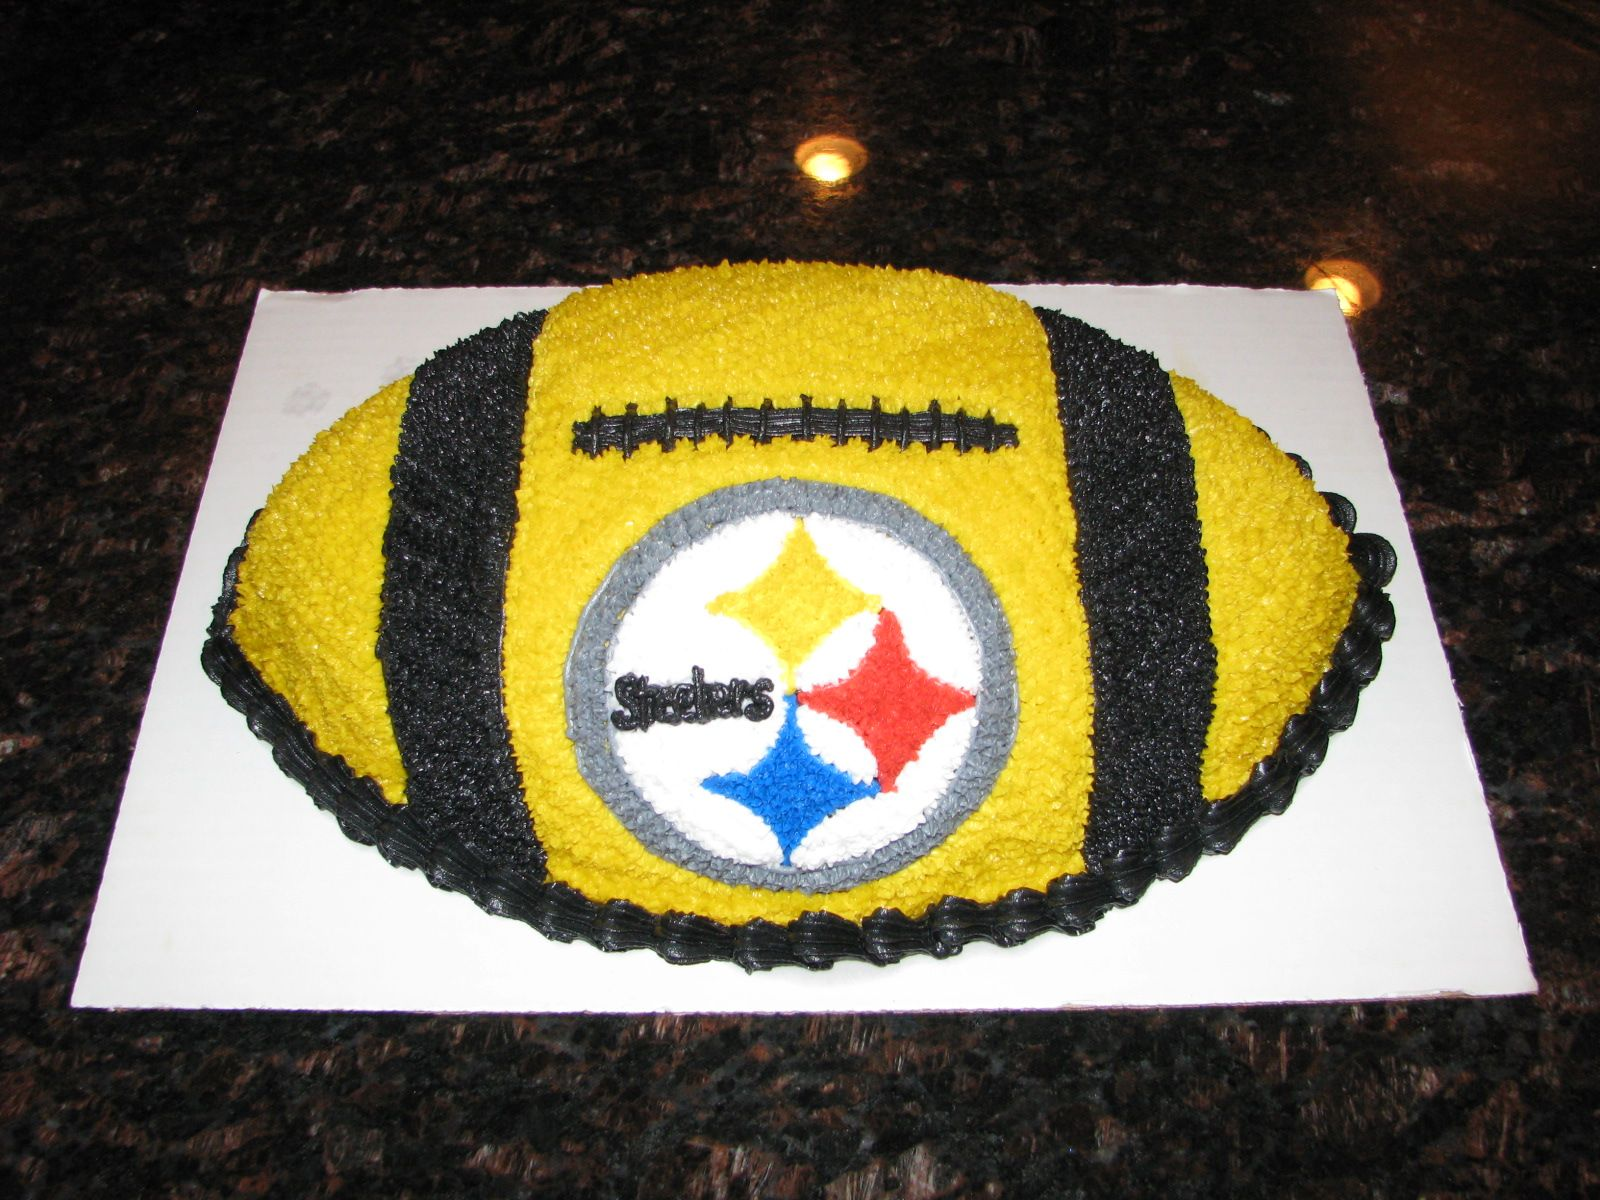 Steelers Football Cake With Images Football Party Cake